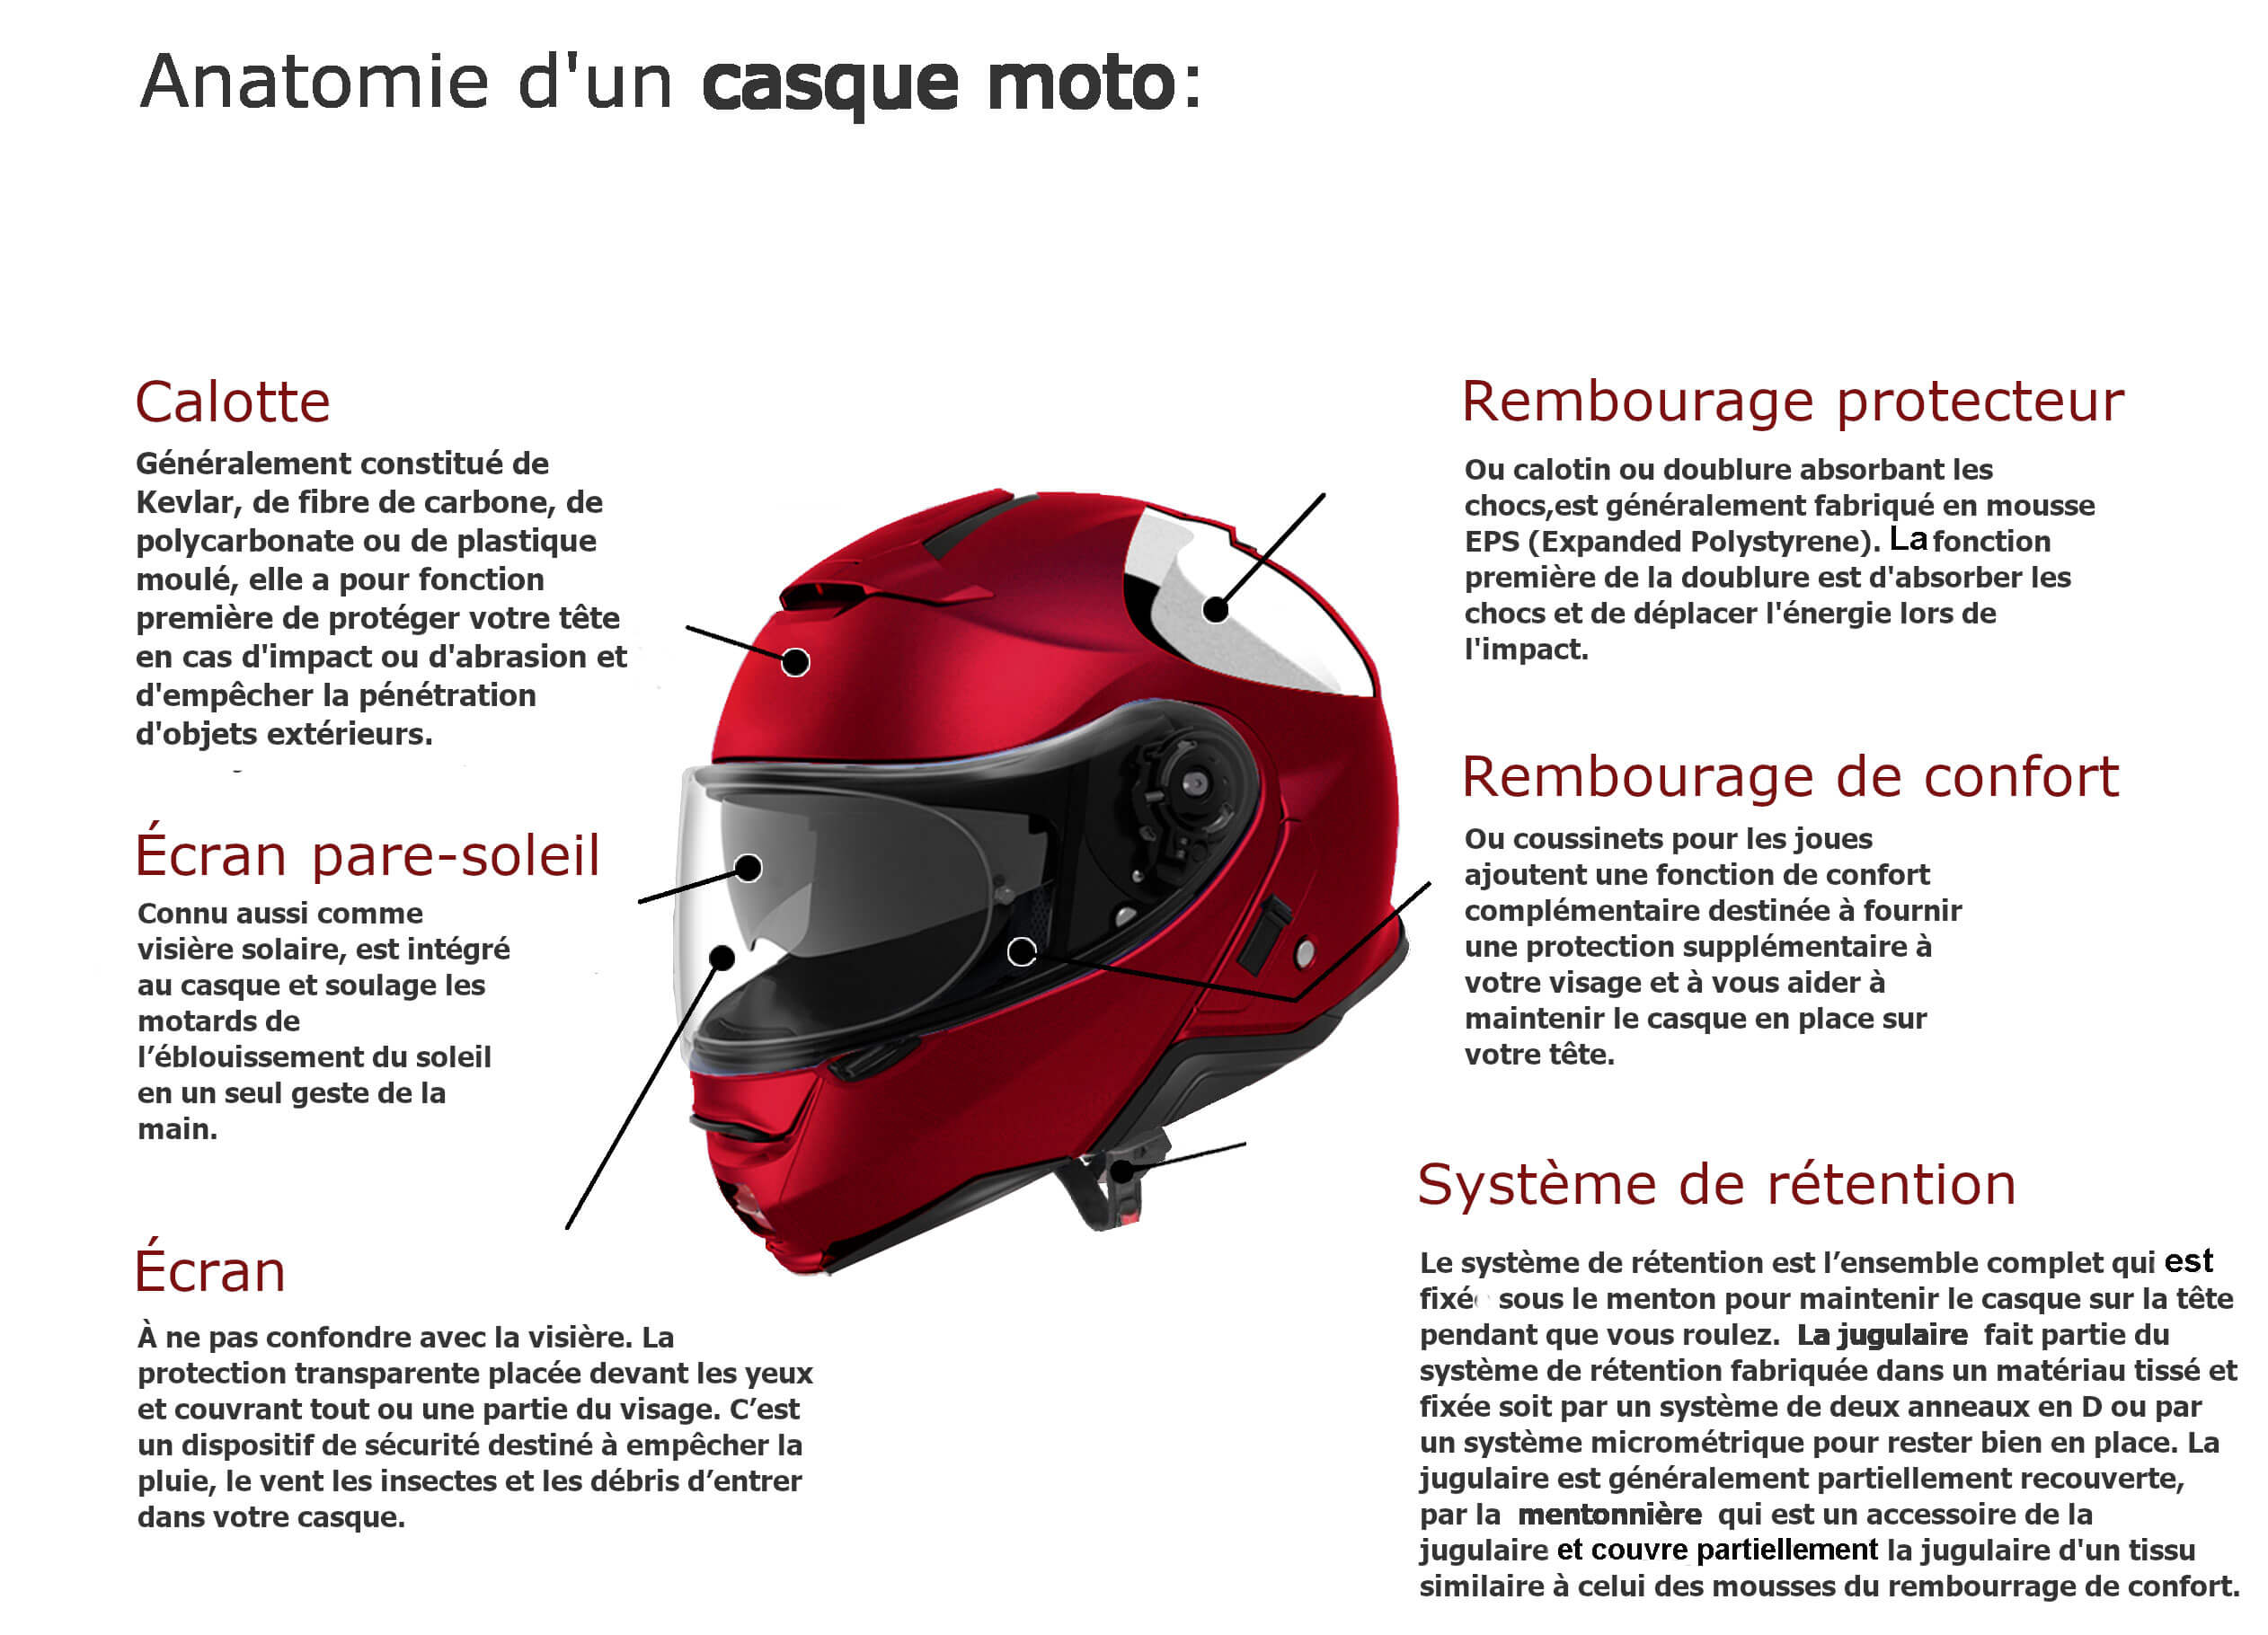 differentes parties d'un casque moto